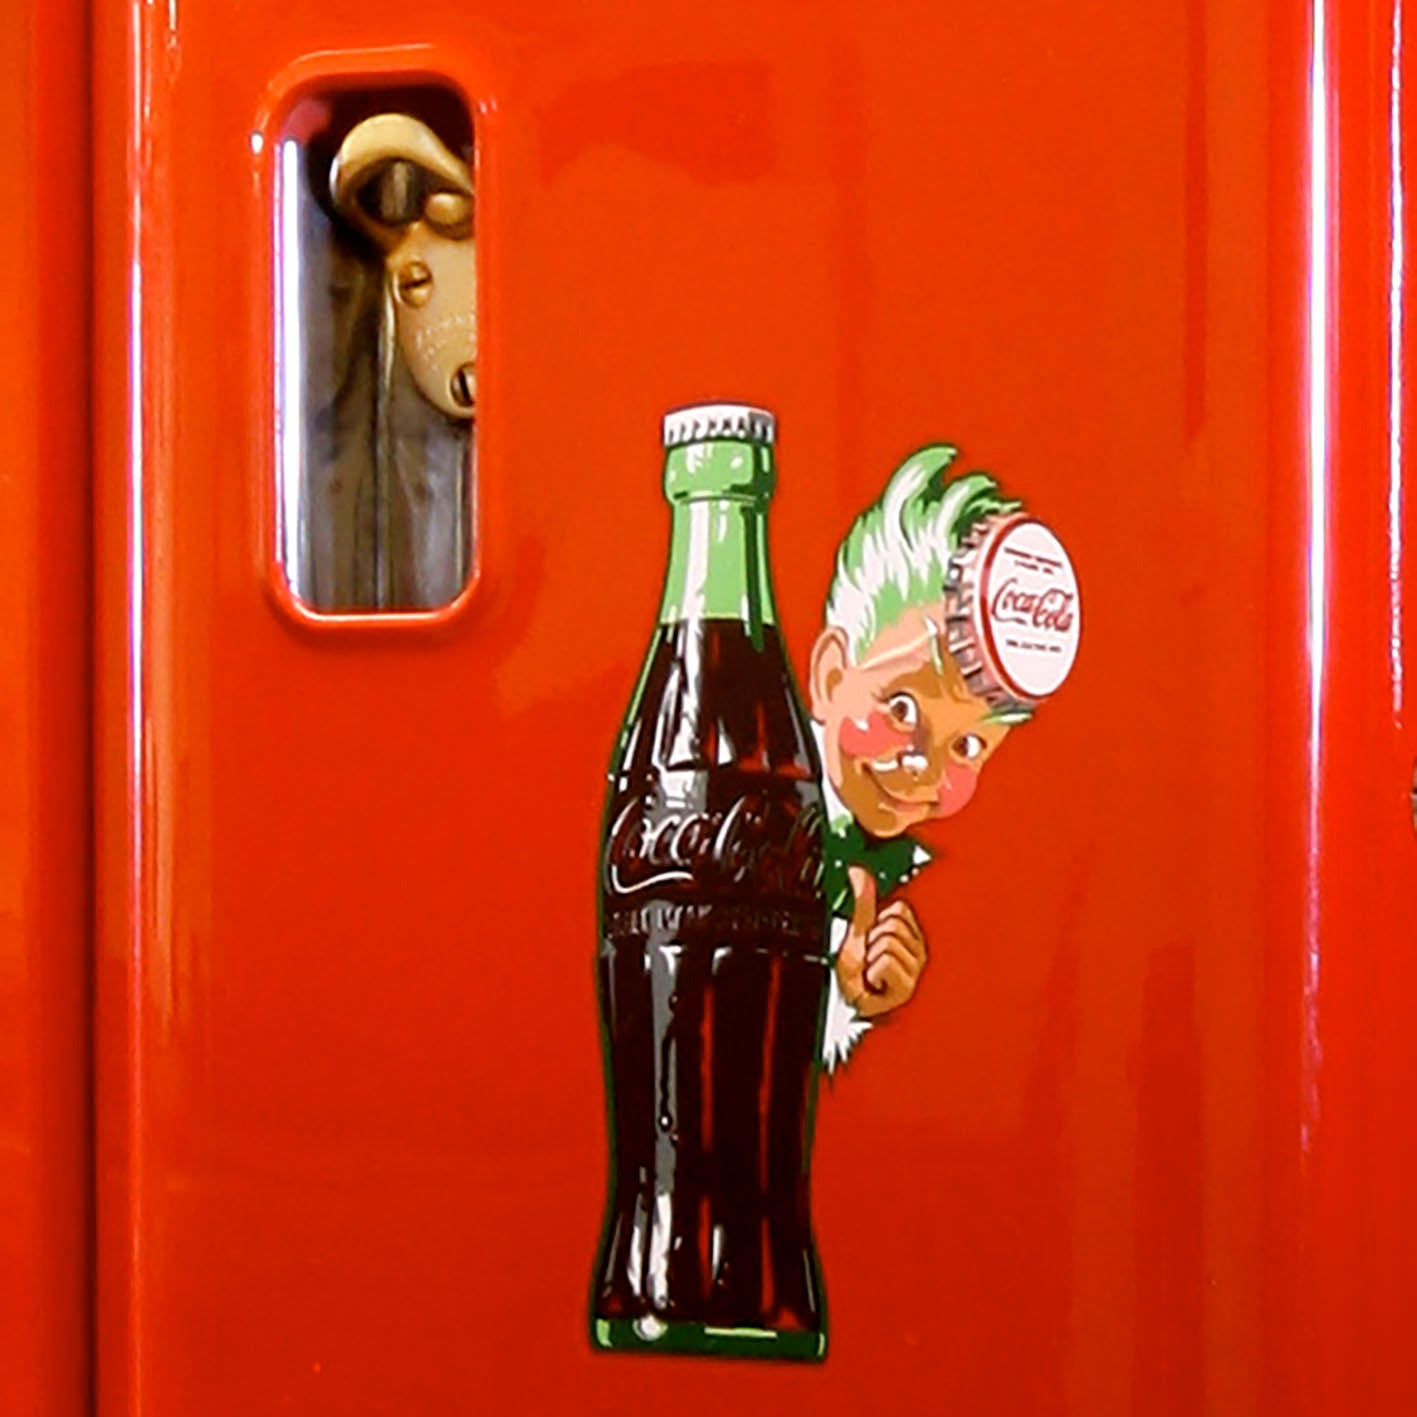 Cavalier 96 Coca-Cola Machine